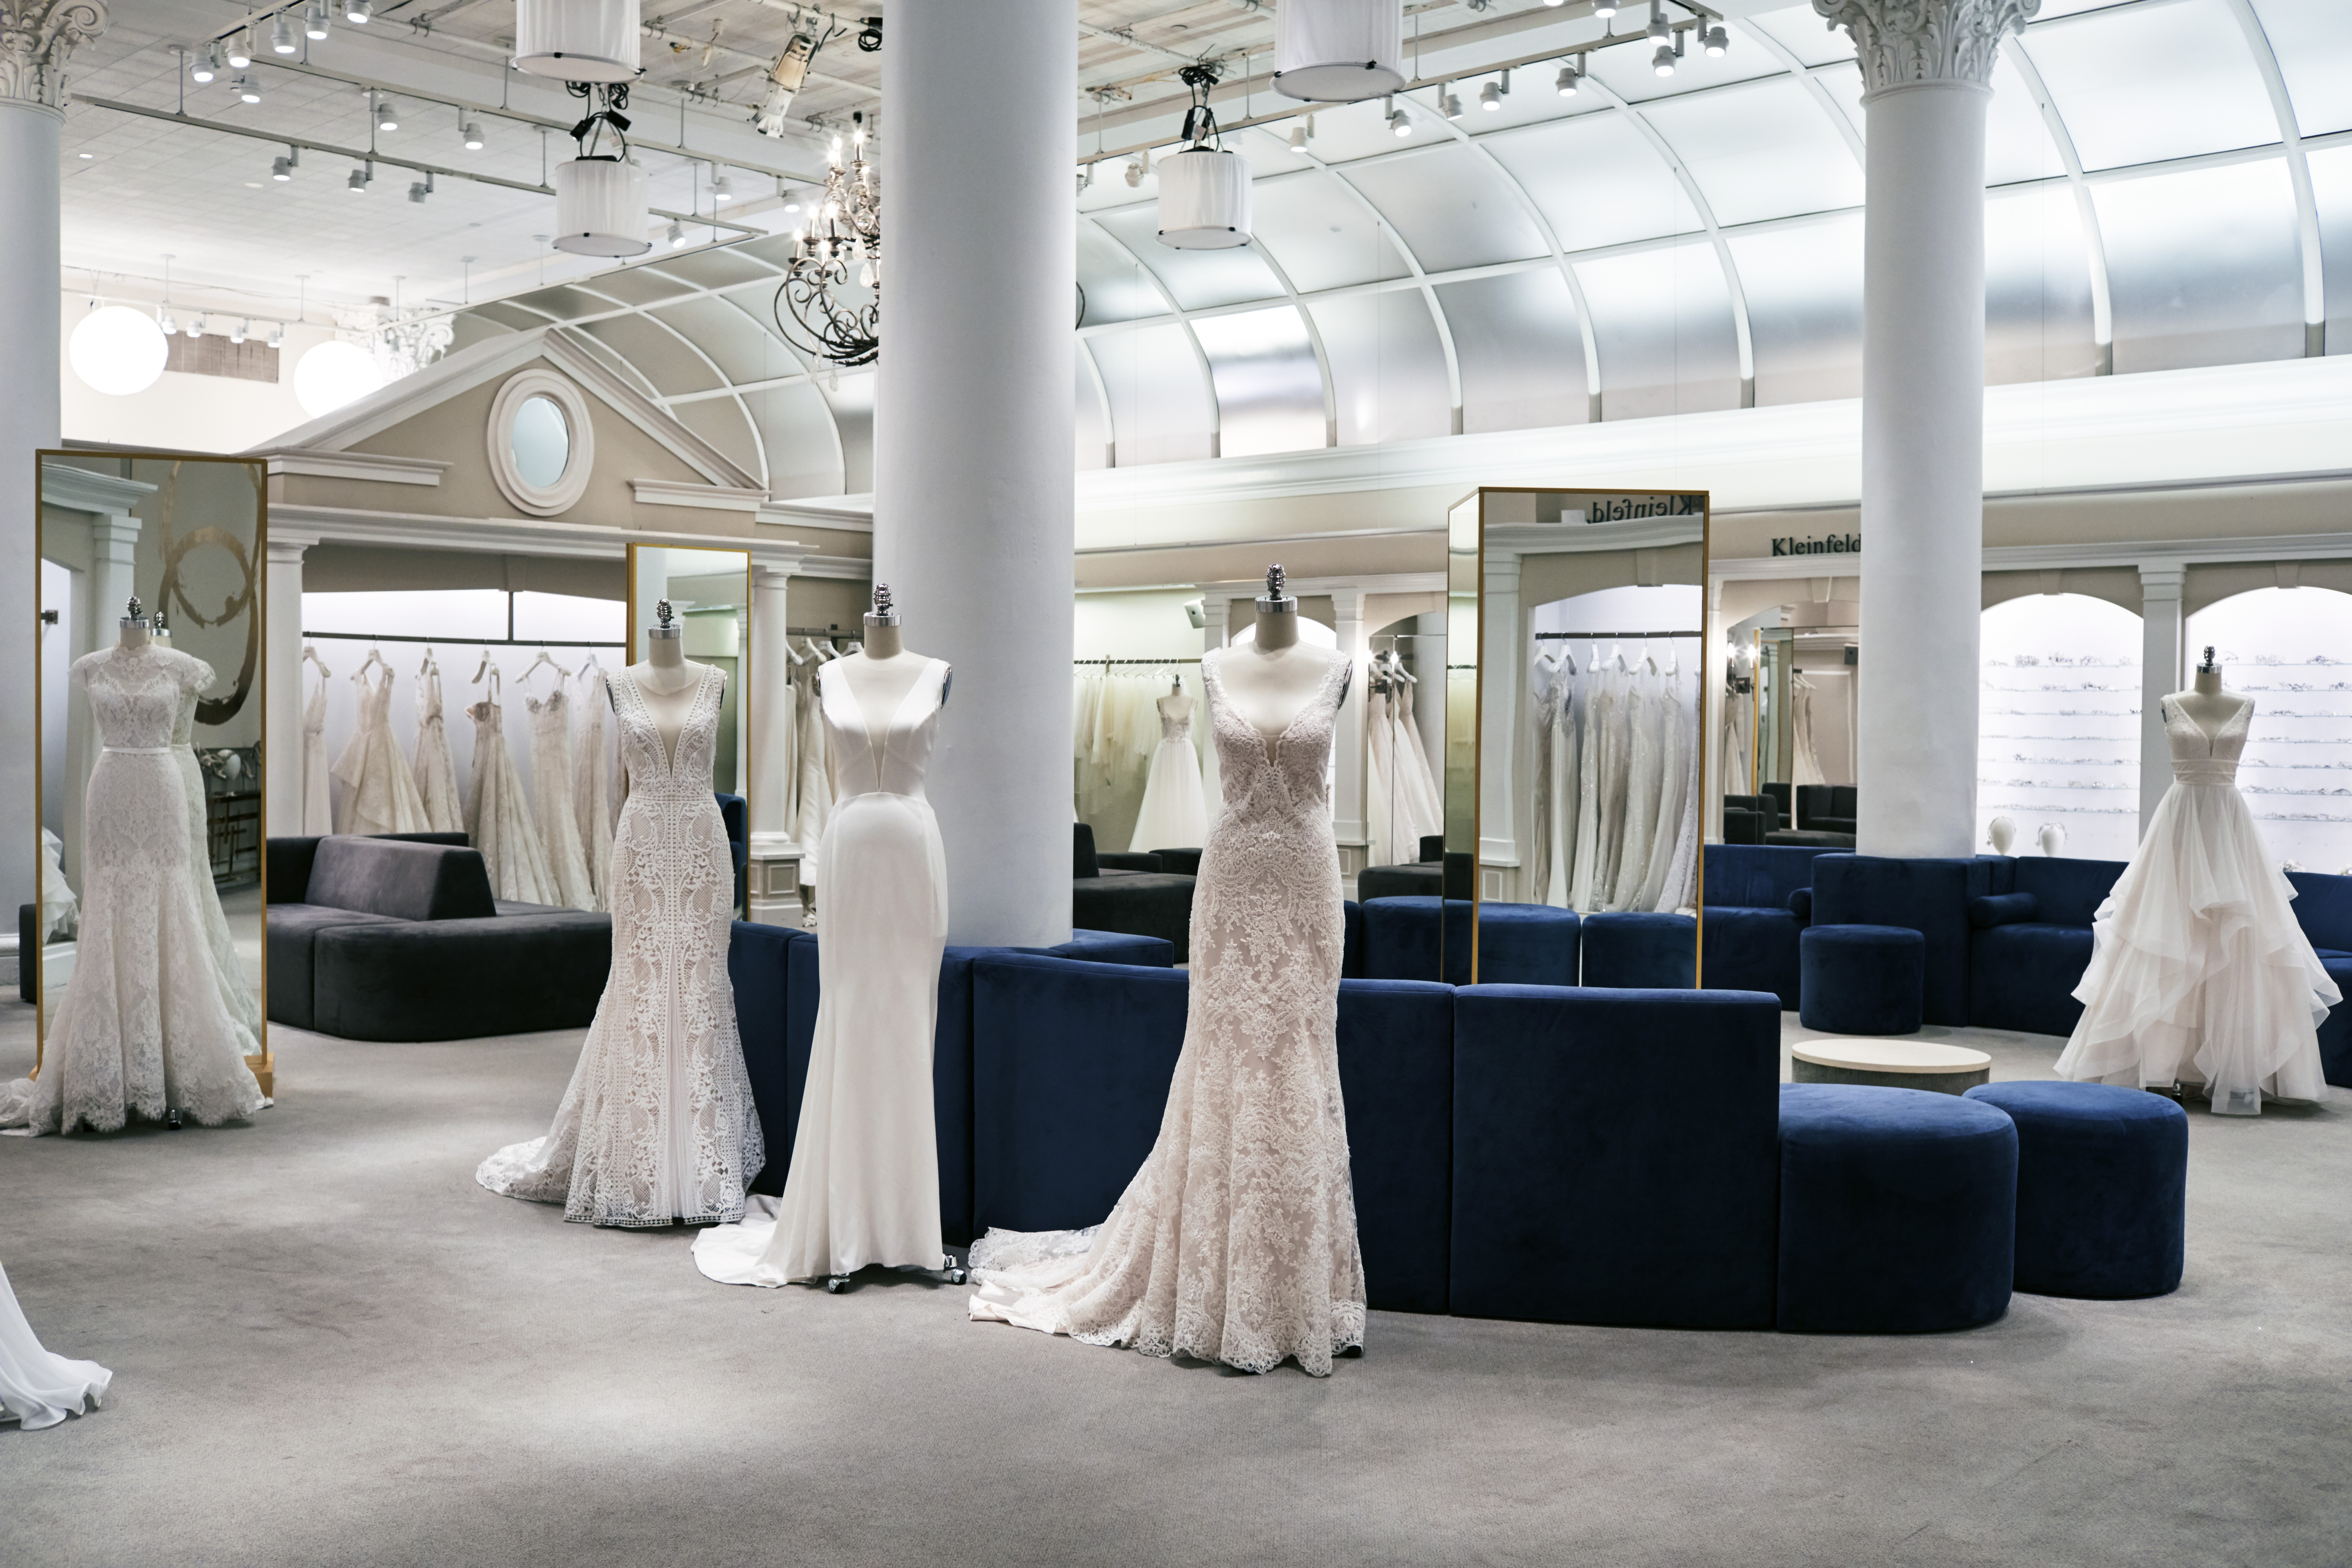 Kleinfeld Bridal  The Largest Selection of Wedding Dresses in the